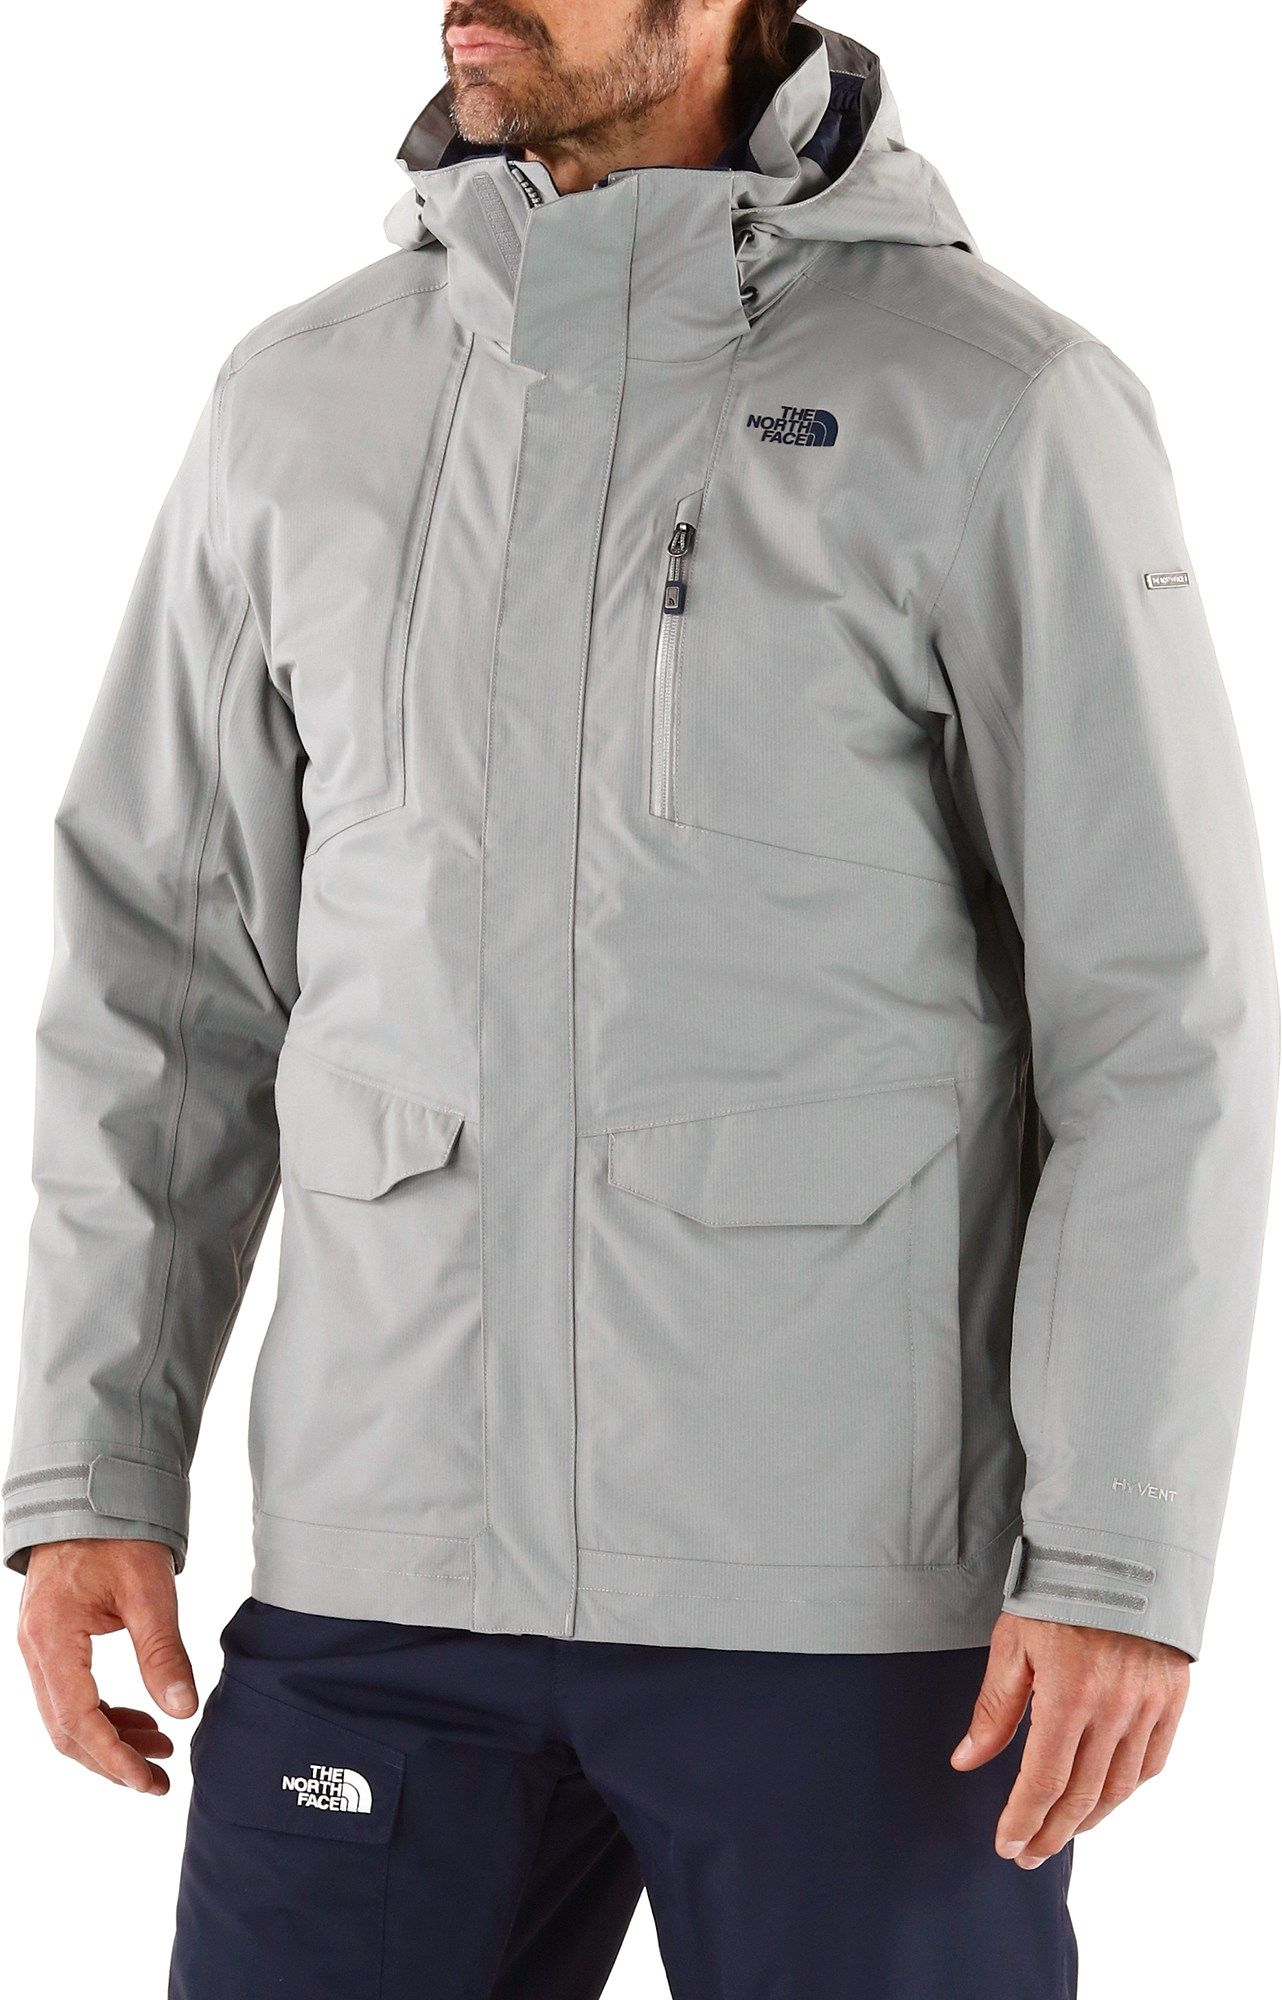 502fa0b7ed3 The North Face Male Thermoball Snow Triclimate 3-In-1 Parka - Men s ...